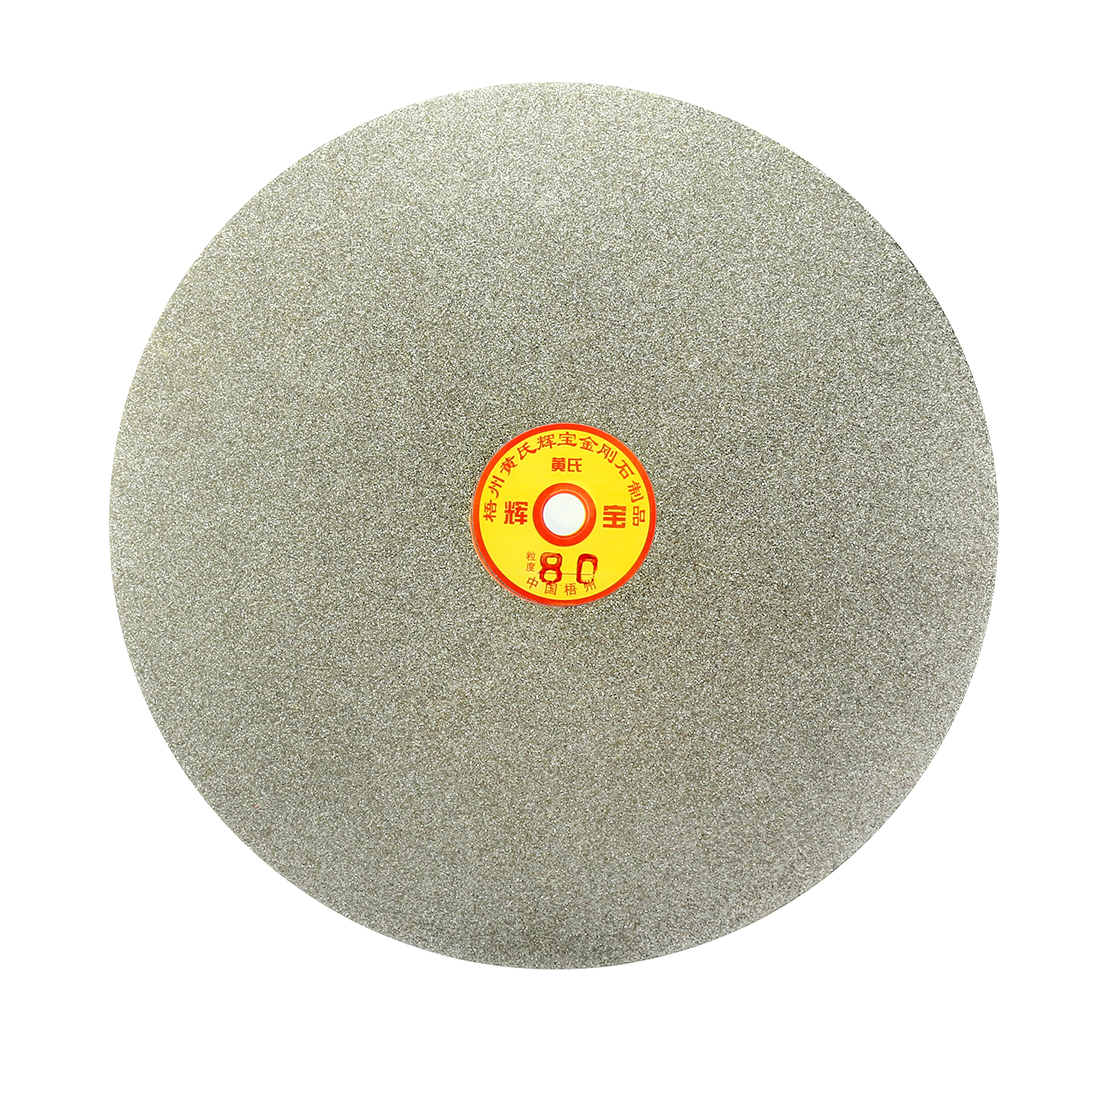 250mm 10-inch Grit 80 Diamond Coated Flat Lap Disk Wheel Grinding Sanding Disc